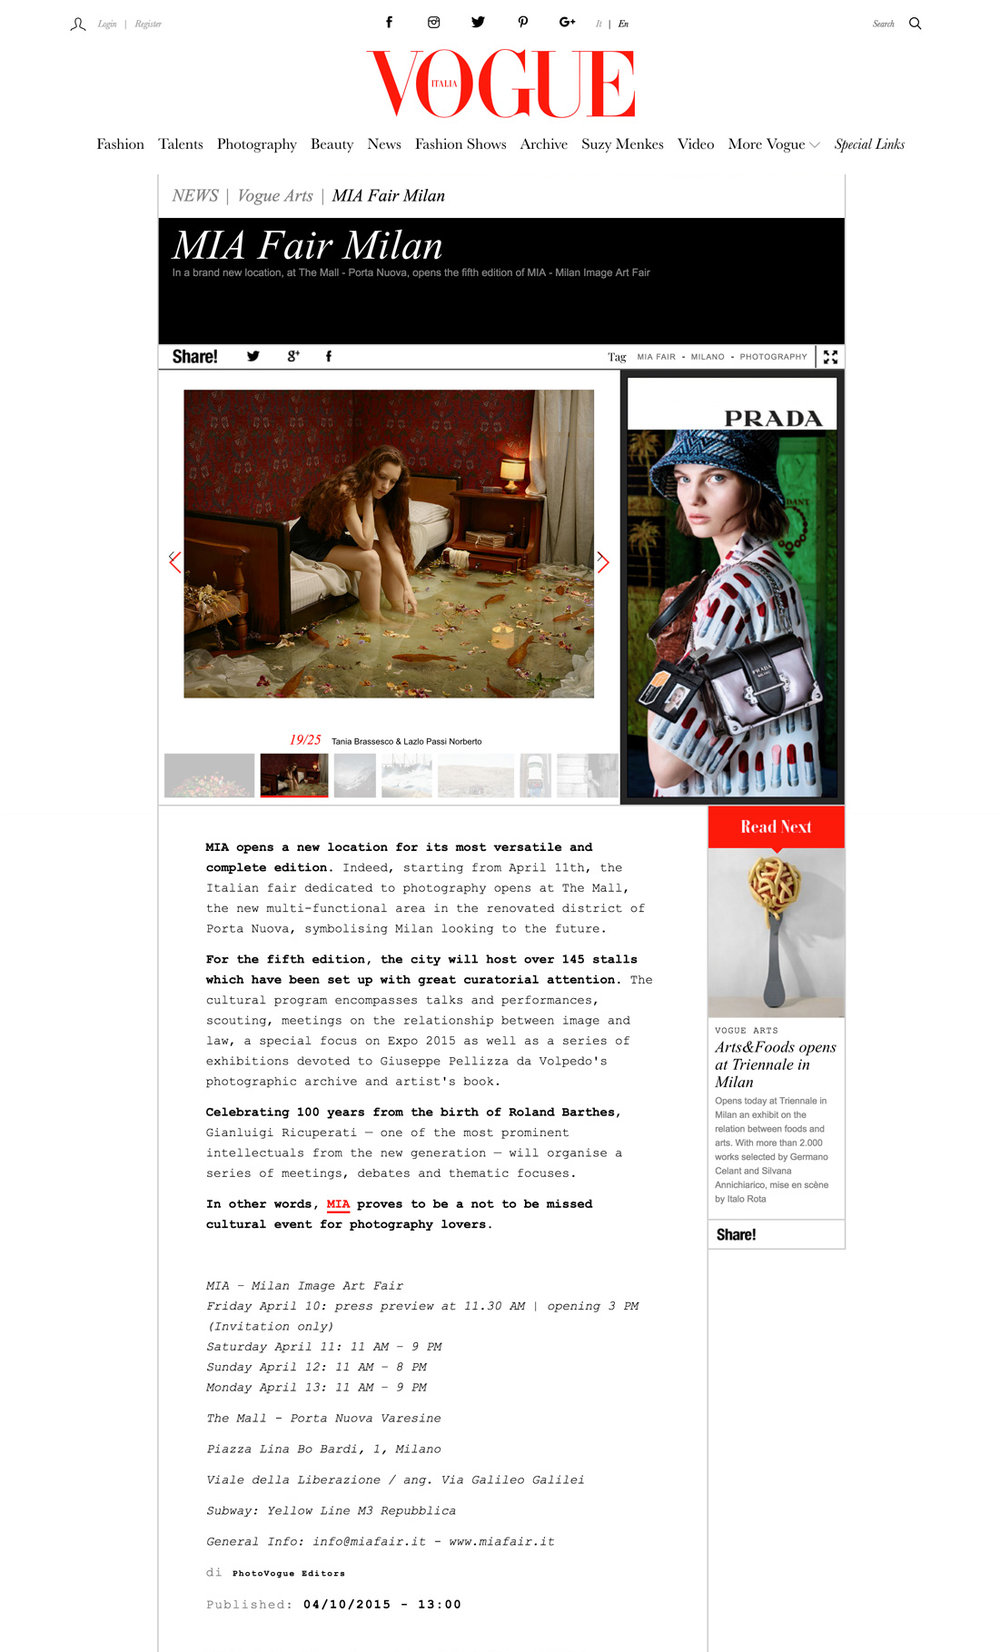 Vogue-unito-web copy.jpg